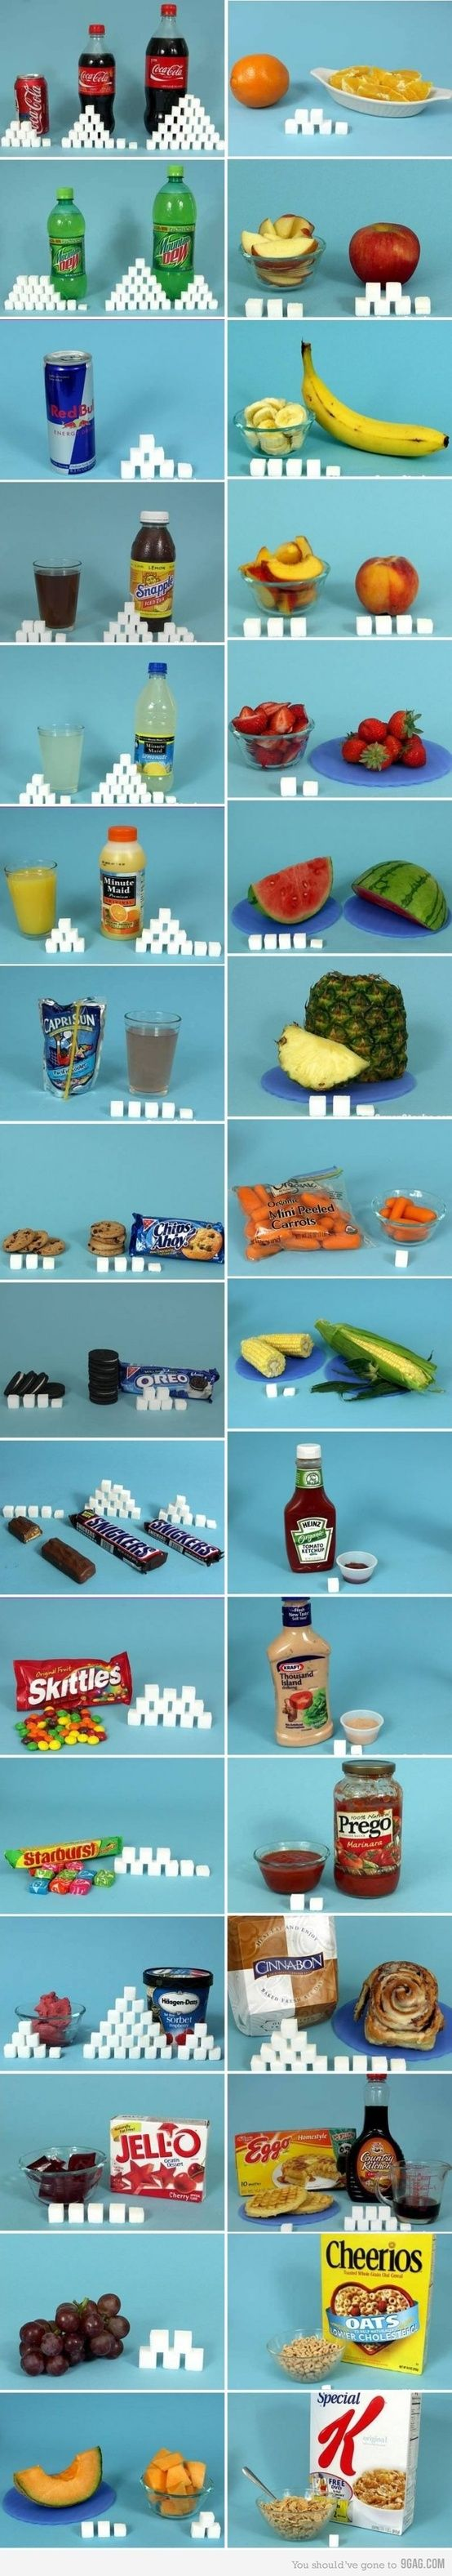 SUGAR CUBE PICTORIAL! HOW MUCH SUGAR IS IN EVERYDAY STUFF YOU EAT!